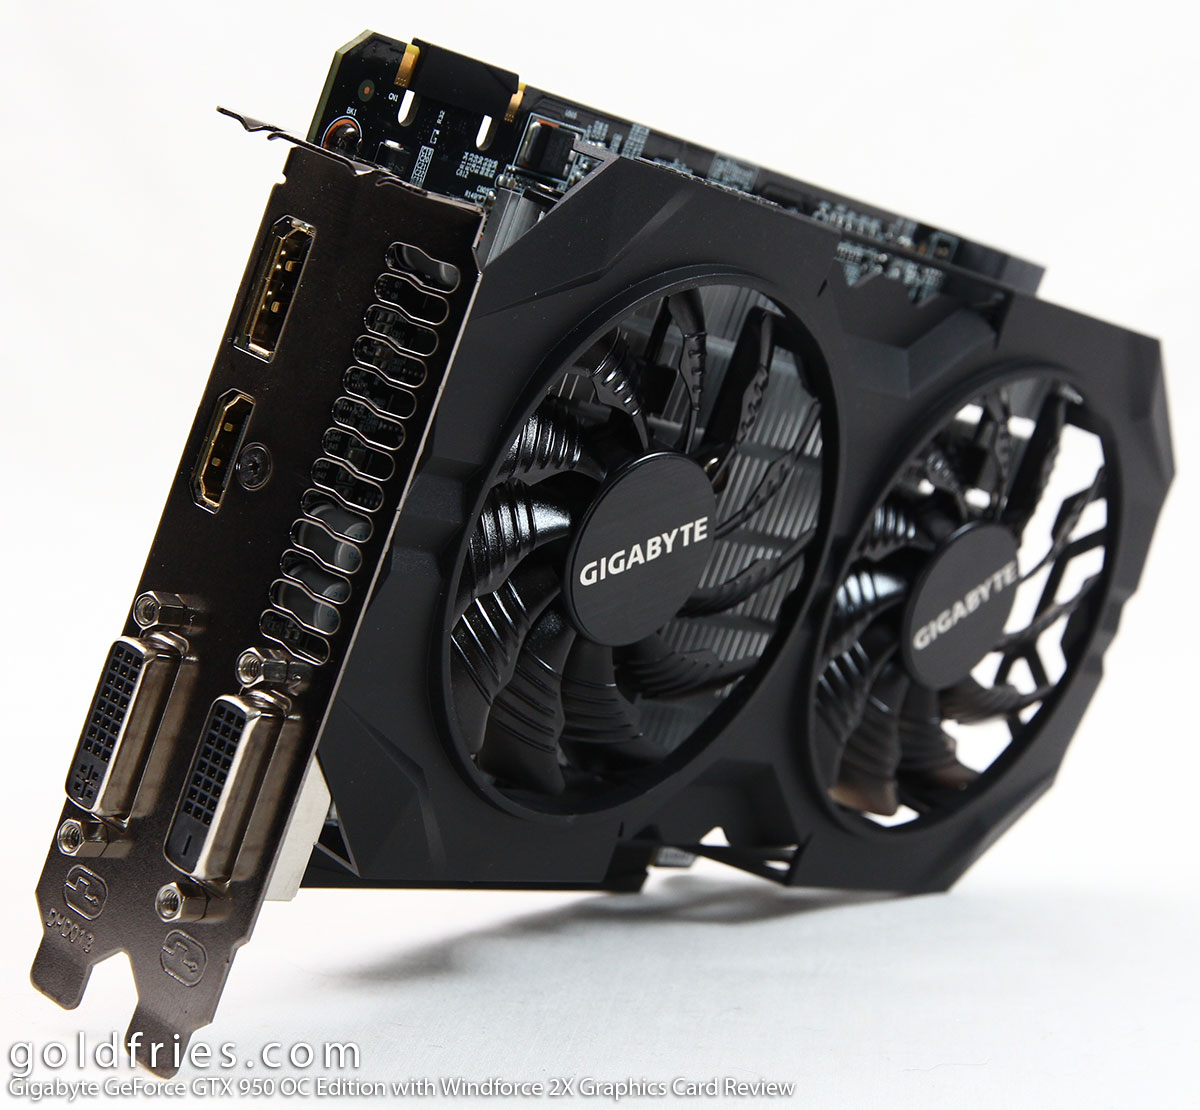 Gigabyte GeForce GTX 950 OC Edition with Windforce 2X Graphics Card Review